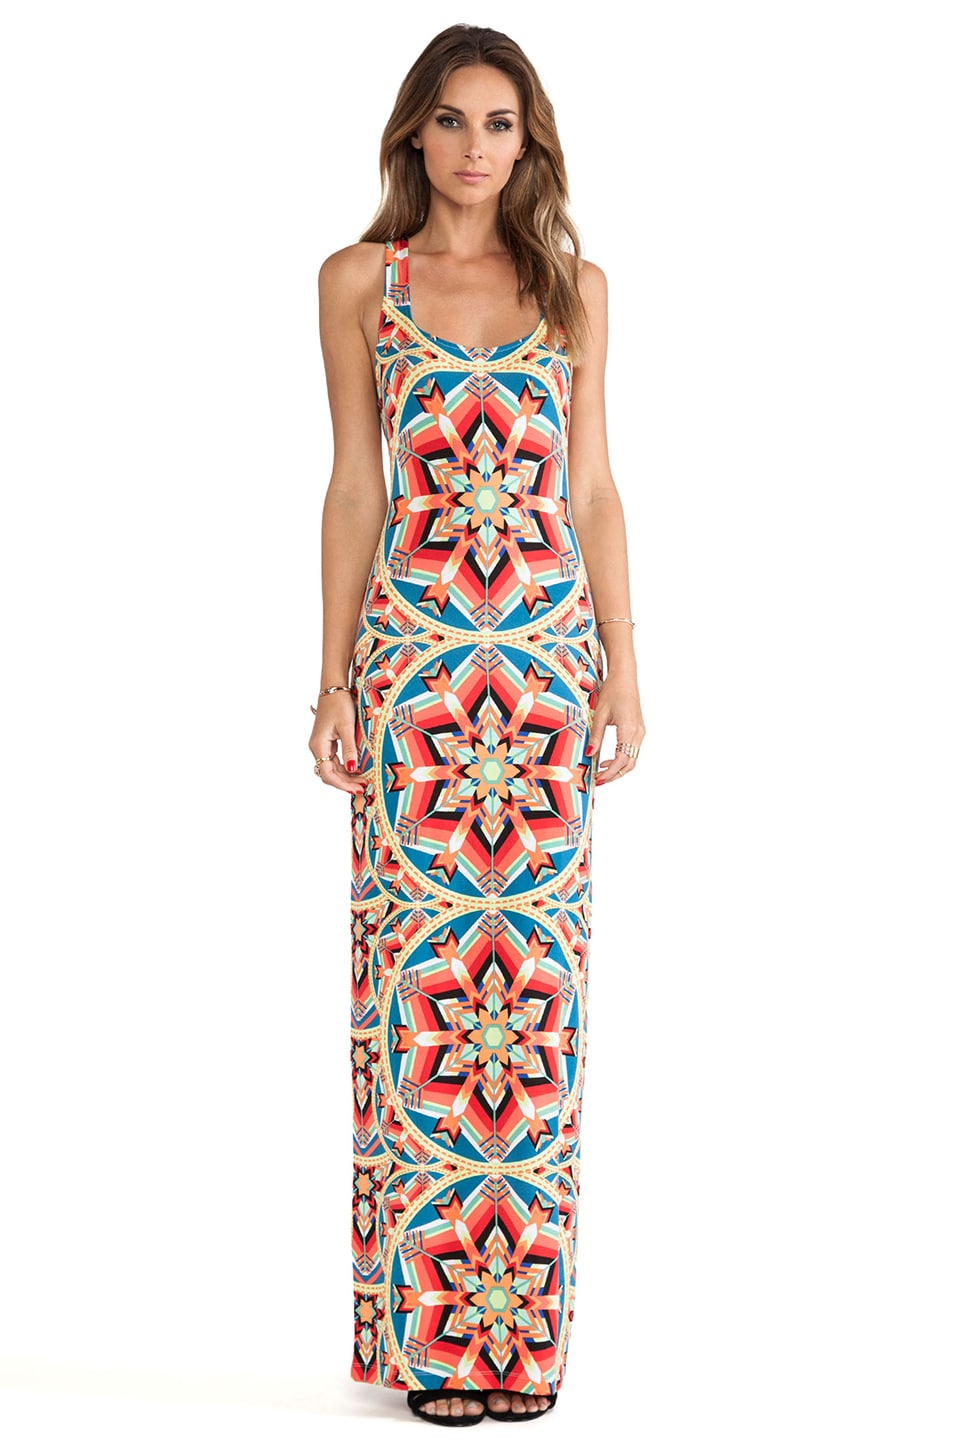 Mara Hoffman Modal Racerbeck Maxi Dress in Kites Teal